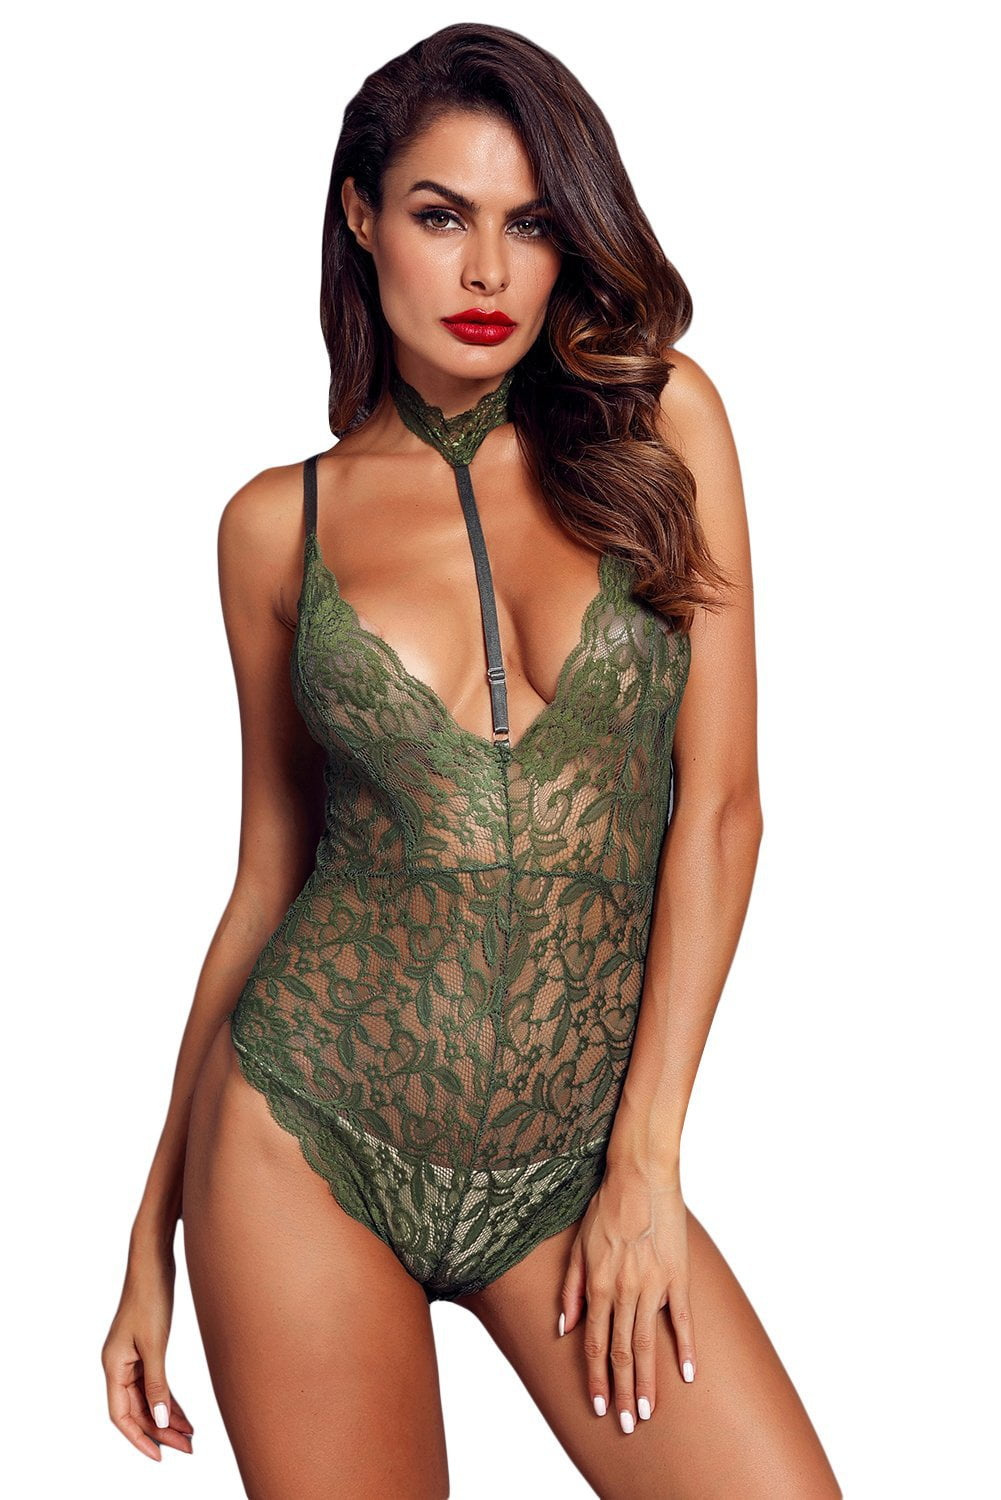 58b4425e68 Tantalize Choker Bodysuit - Army Green - Wild Thoughts Lingerie